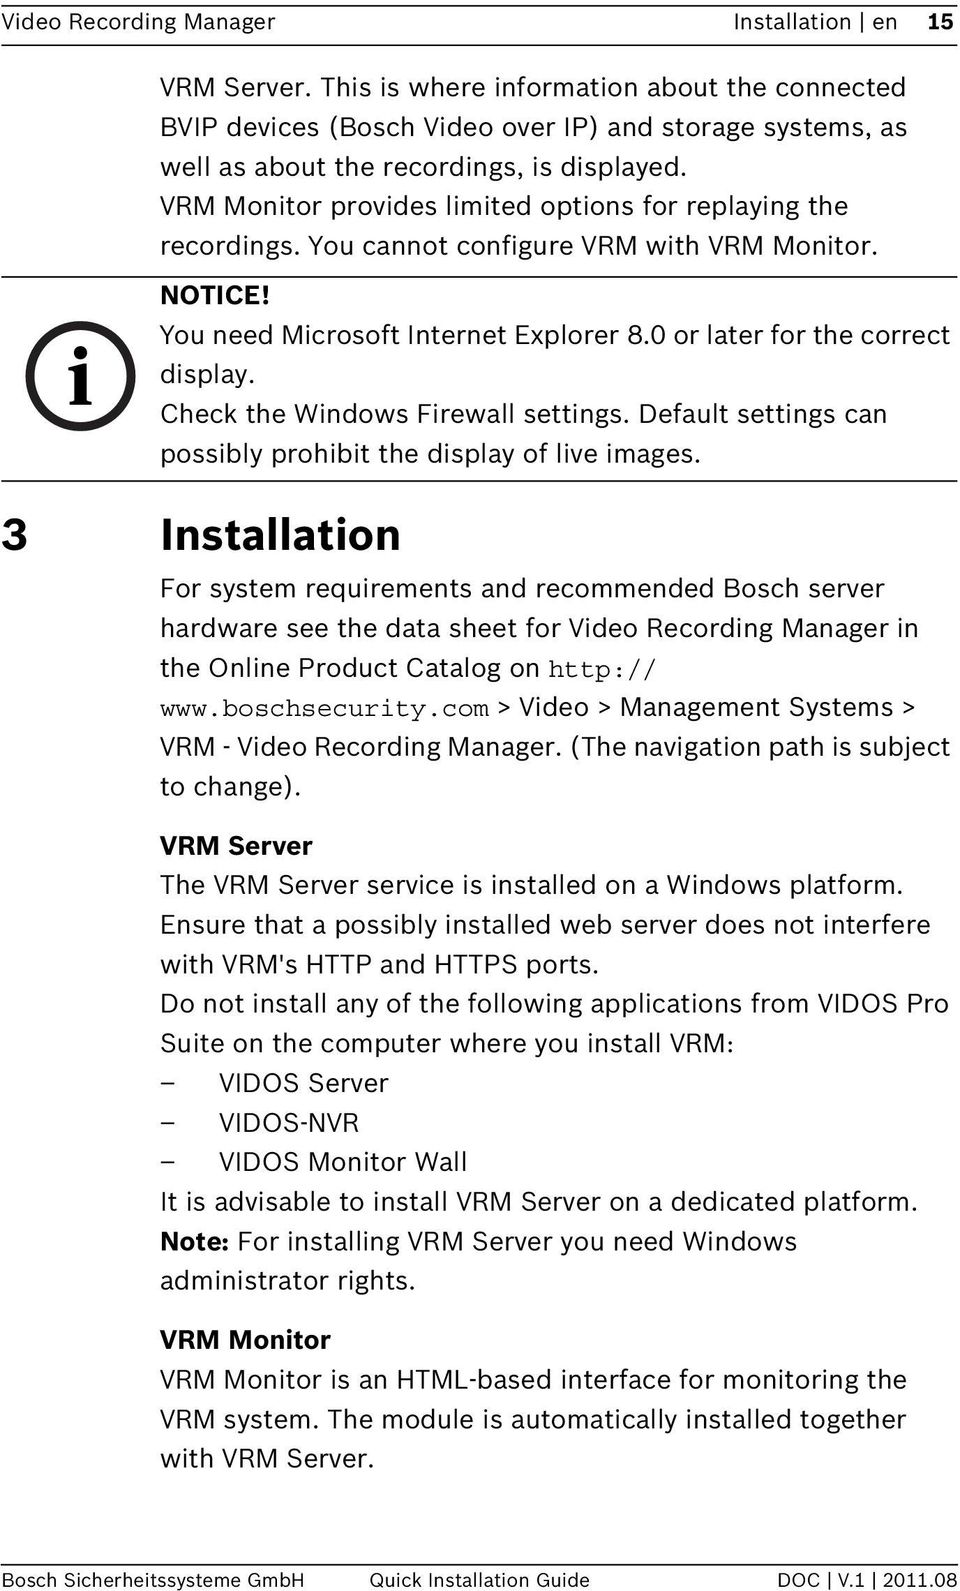 VRM Monitor provides limited options for replaying the recordings. You cannot configure VRM with VRM Monitor. NOTICE! You need Microsoft Internet Explorer 8.0 or later for the correct display.